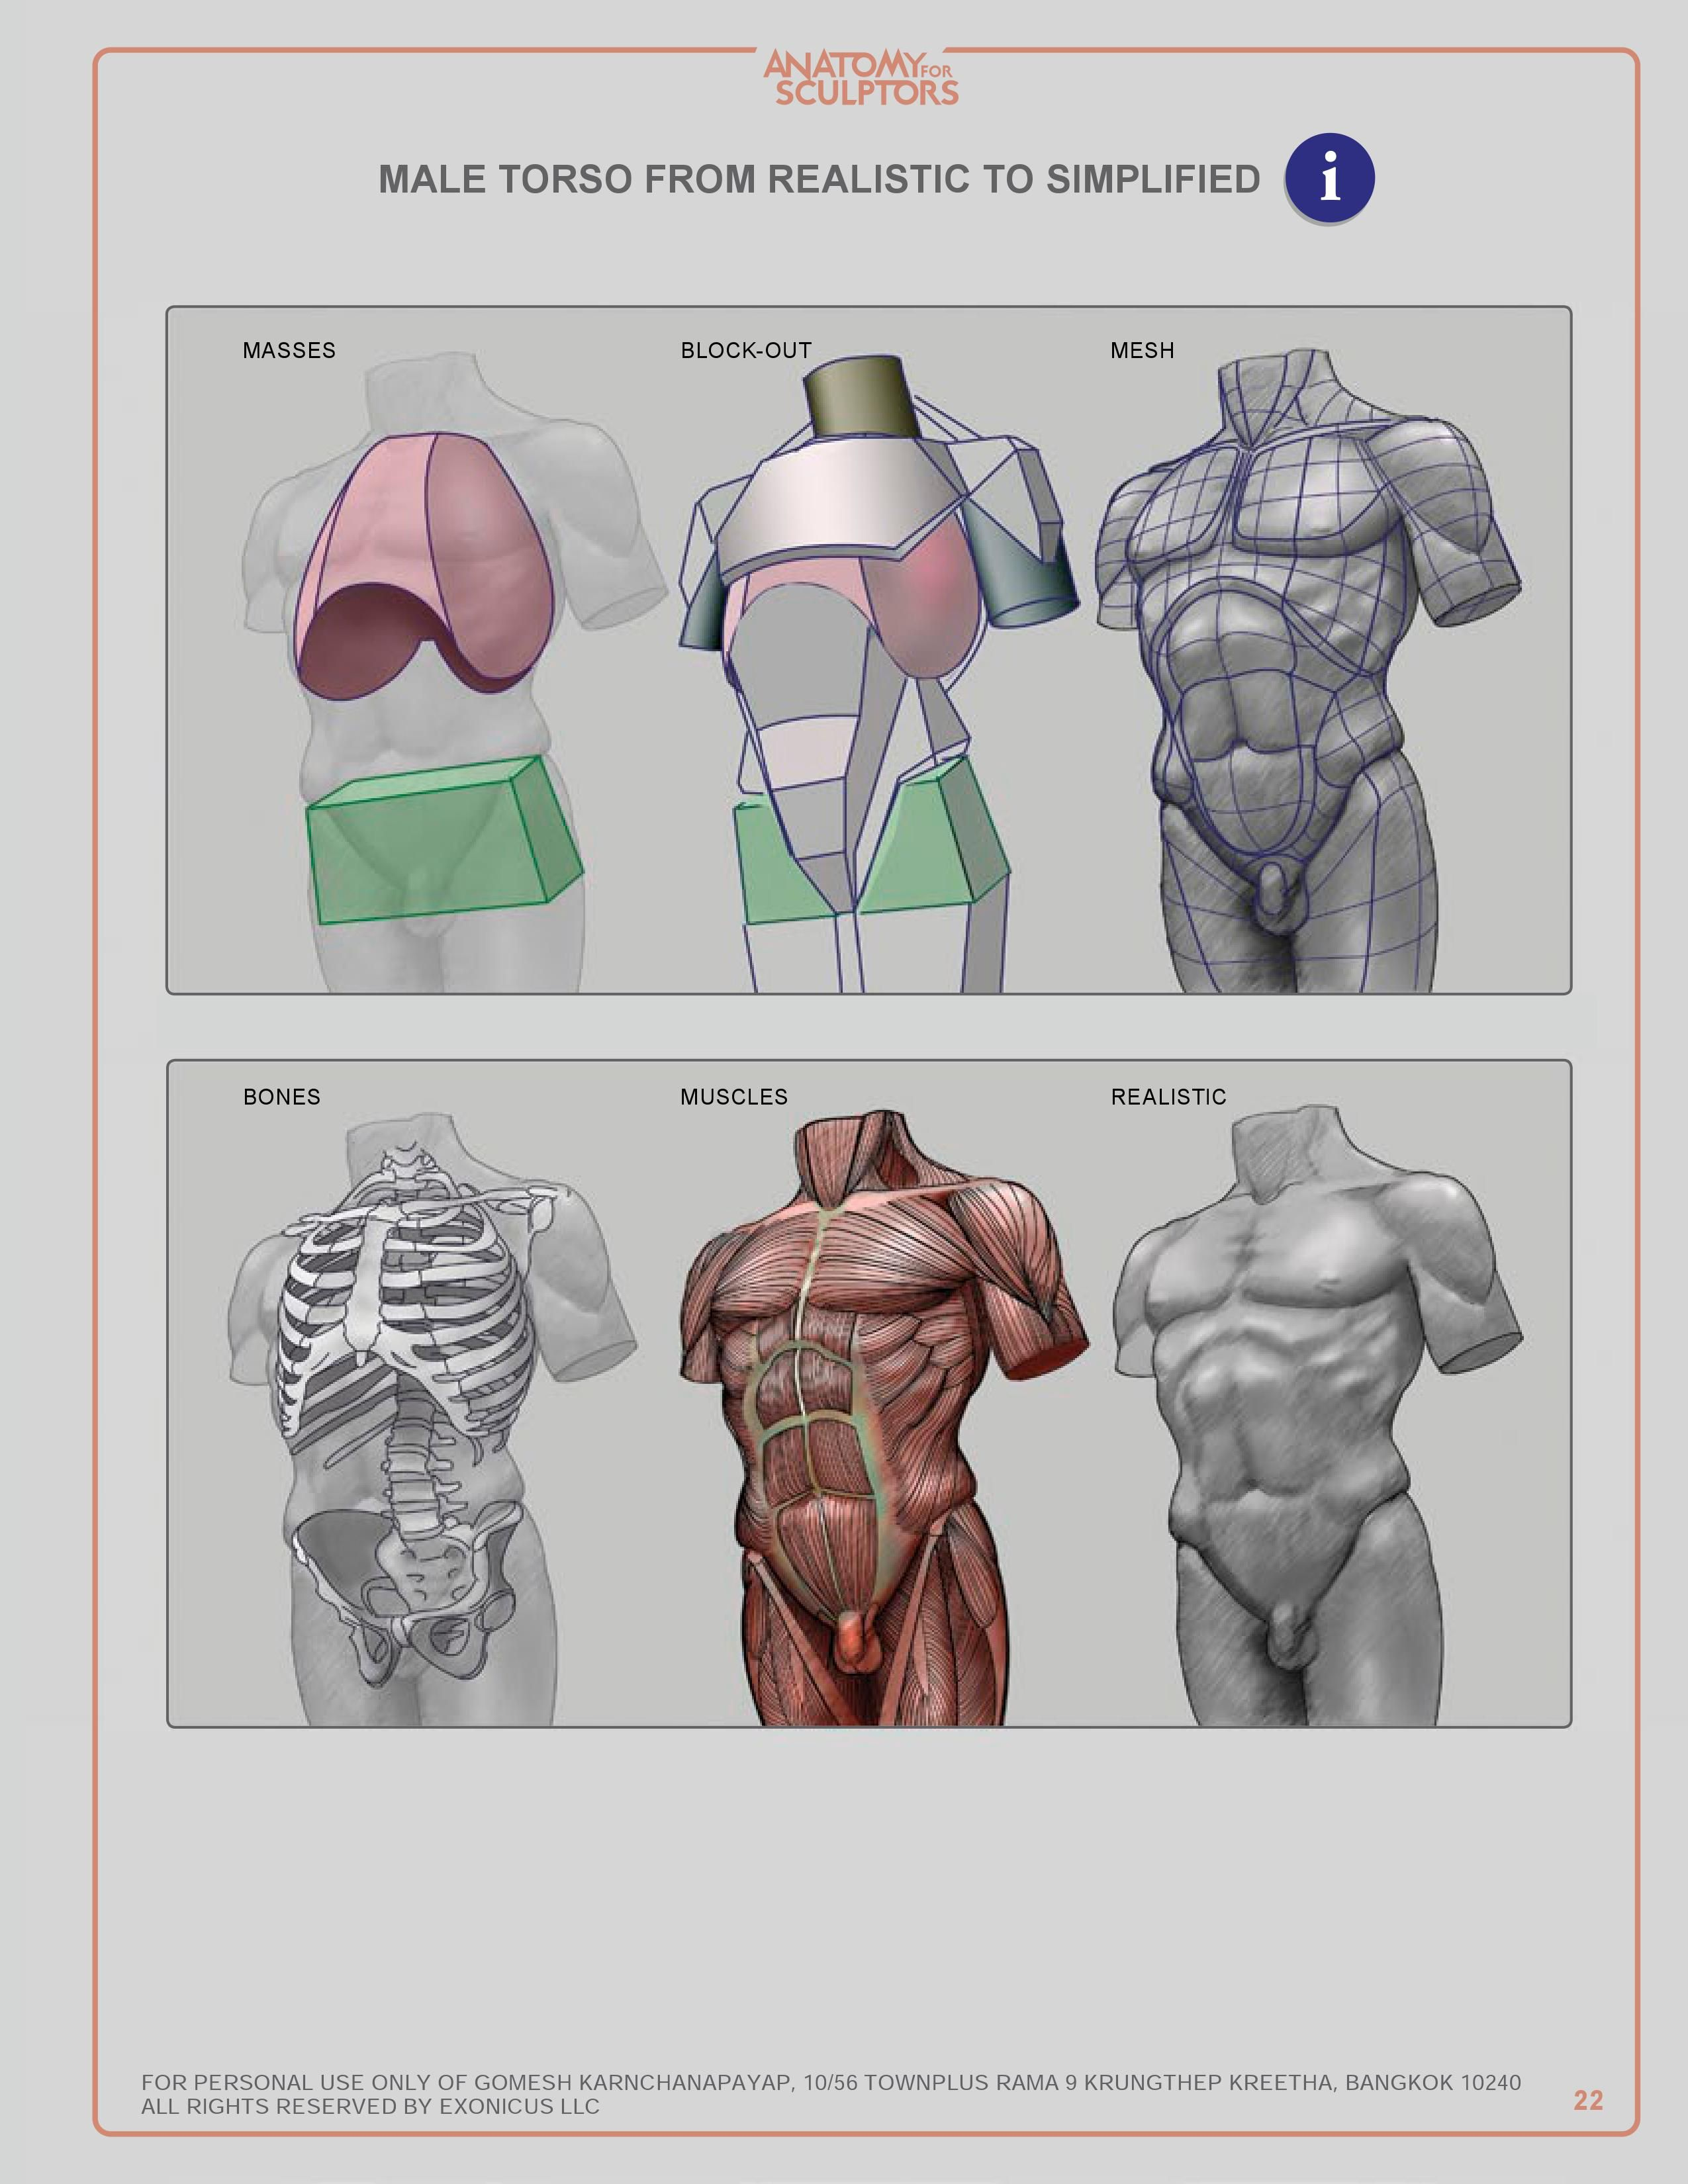 MALE TORSO FROM REALISTIC TO SIMPLIFIED | Human anatomy | Pinterest ...